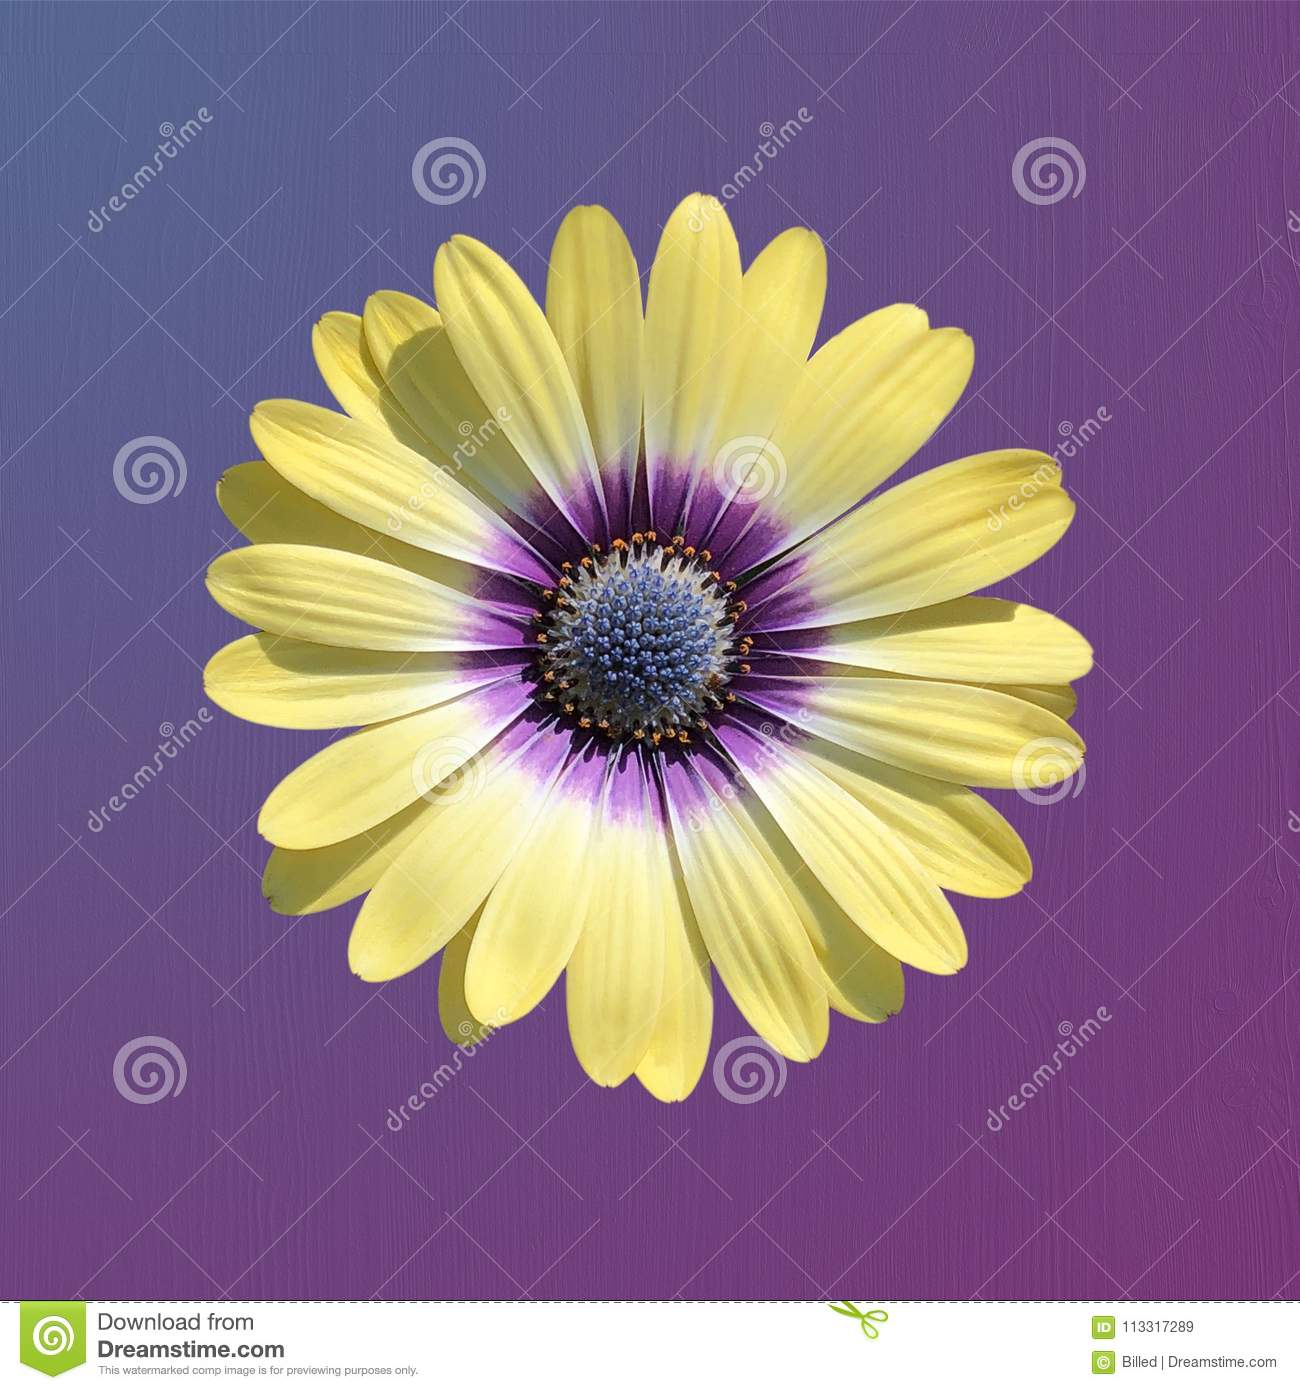 Single Yellow Daisy Flower On A Blue And Purple Gradient Background